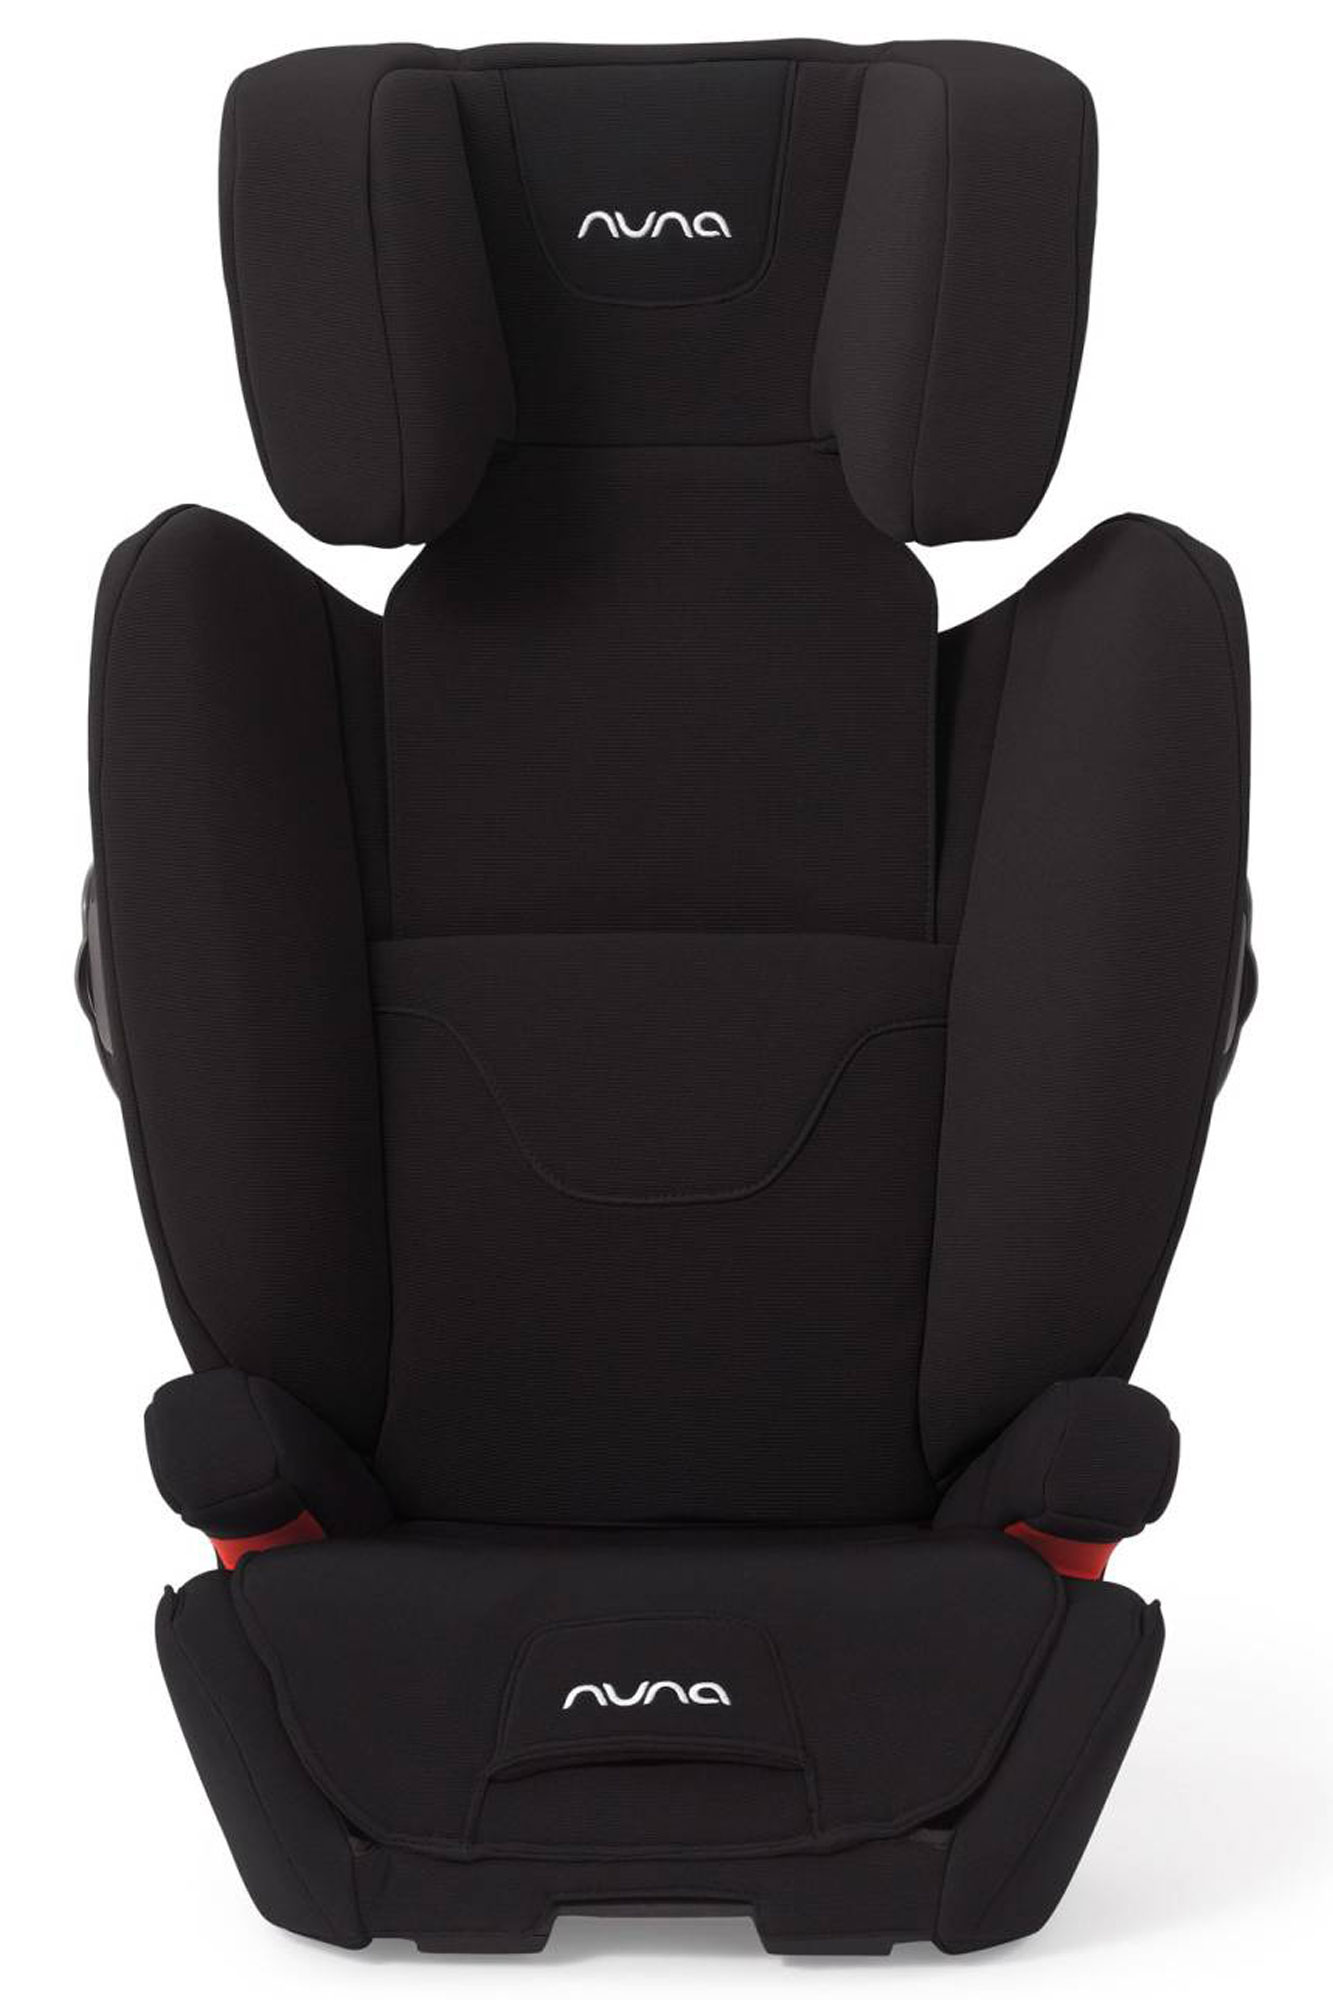 aace-booster-seat-2000